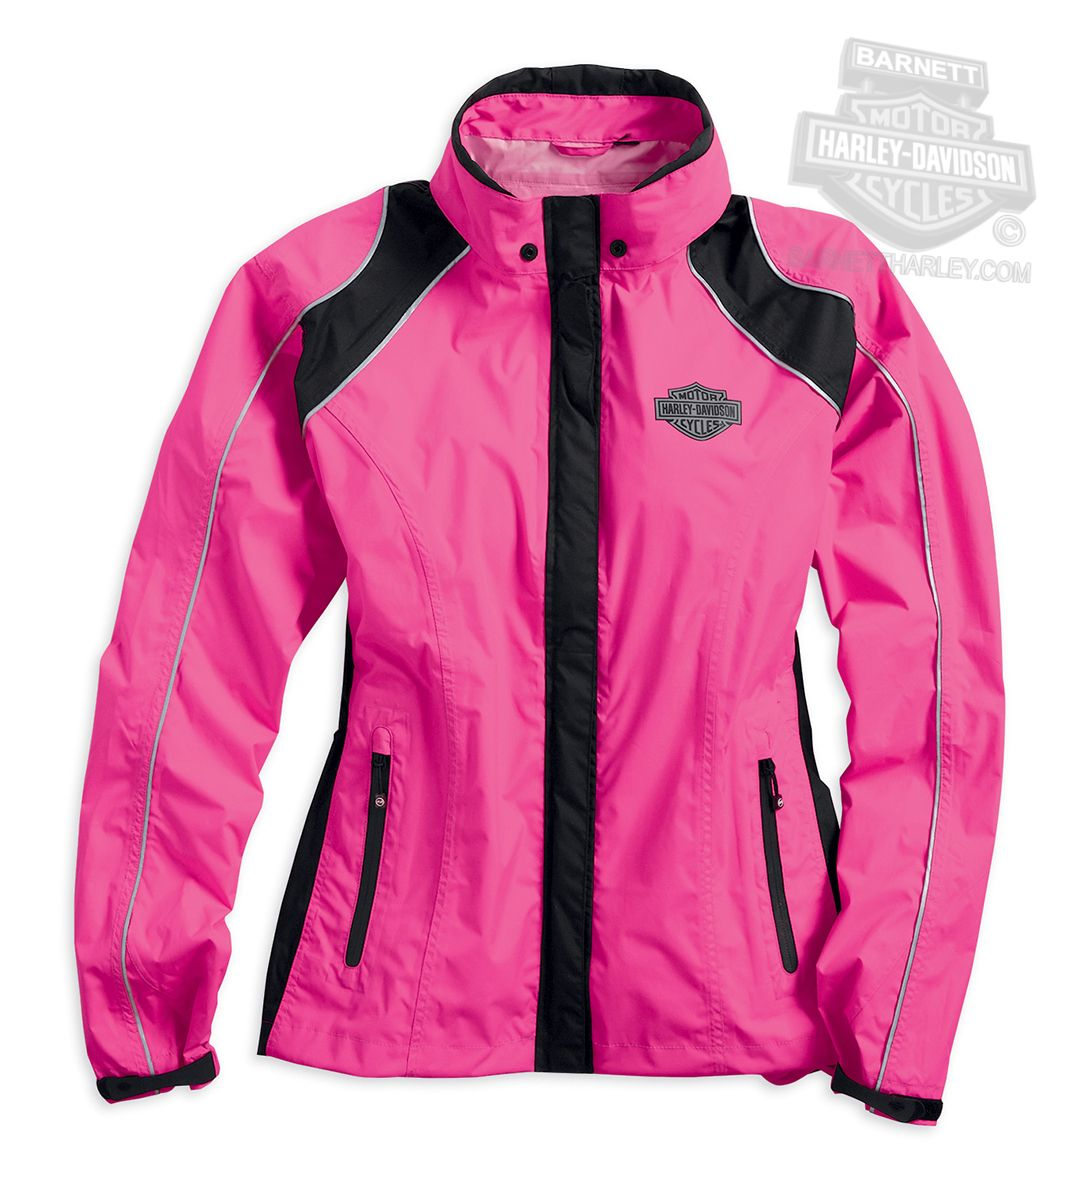 Shop for pink rain jacket online at Target. Free shipping on purchases over $35 and save 5% every day with your Target REDcard.